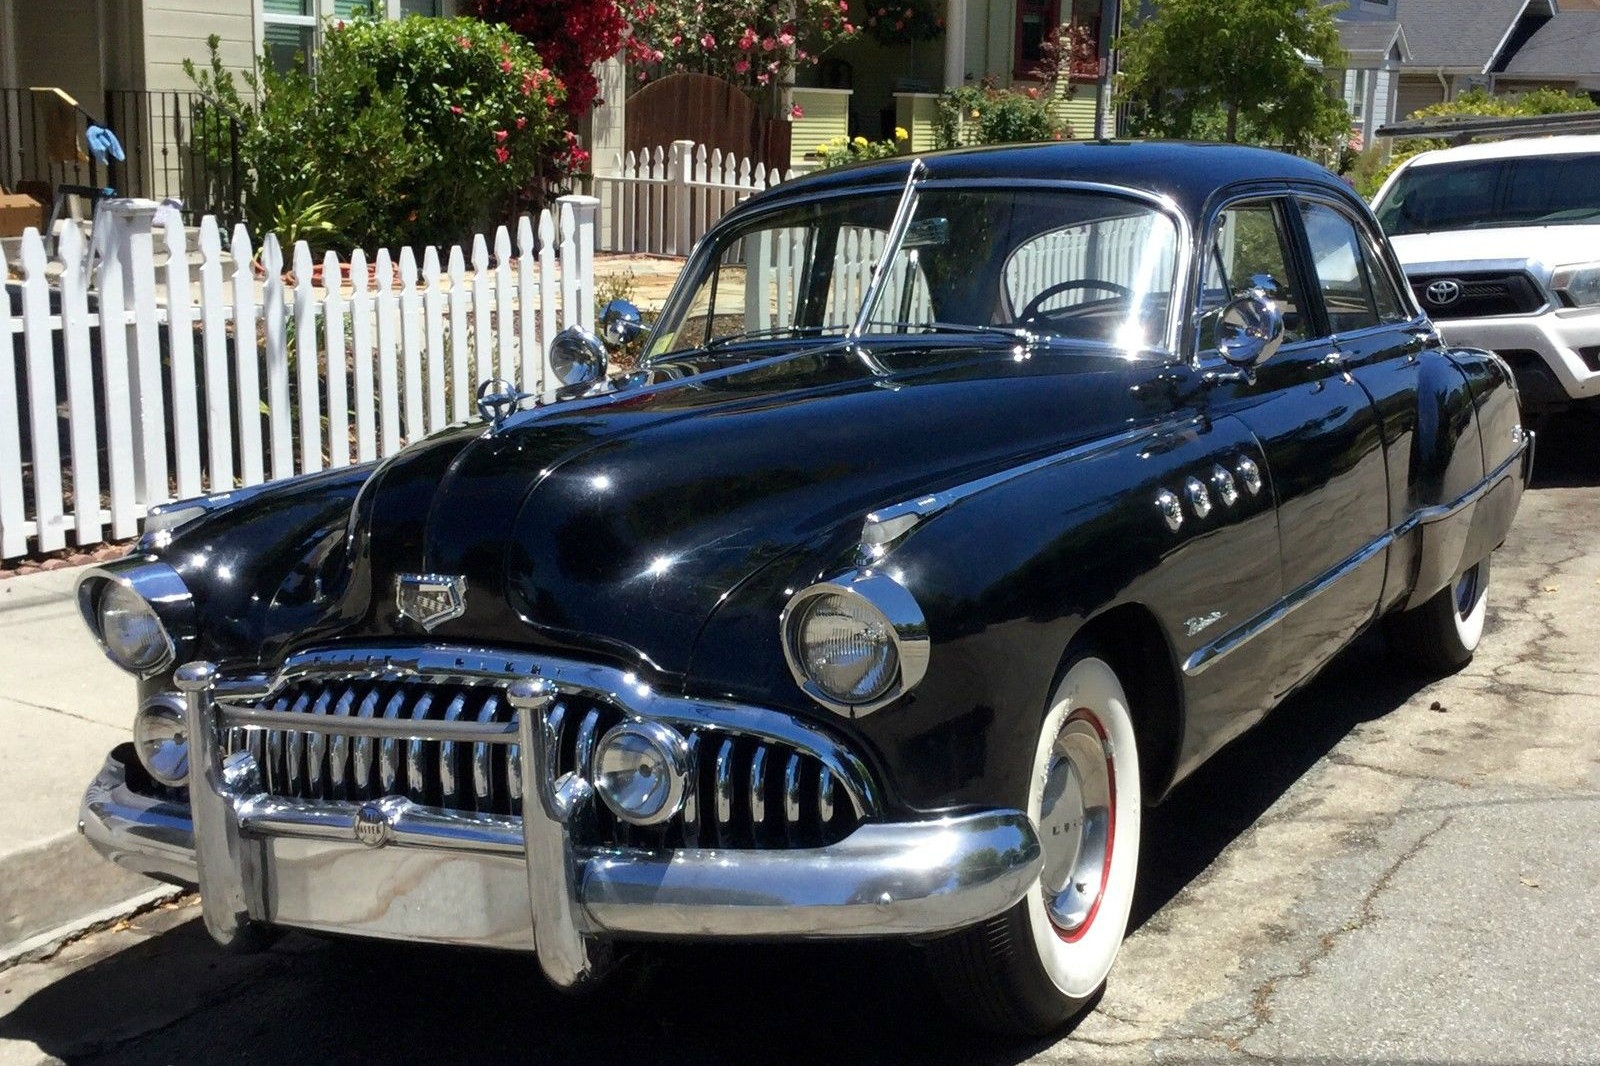 black and chrome original 1949 buick roadmaster. Black Bedroom Furniture Sets. Home Design Ideas